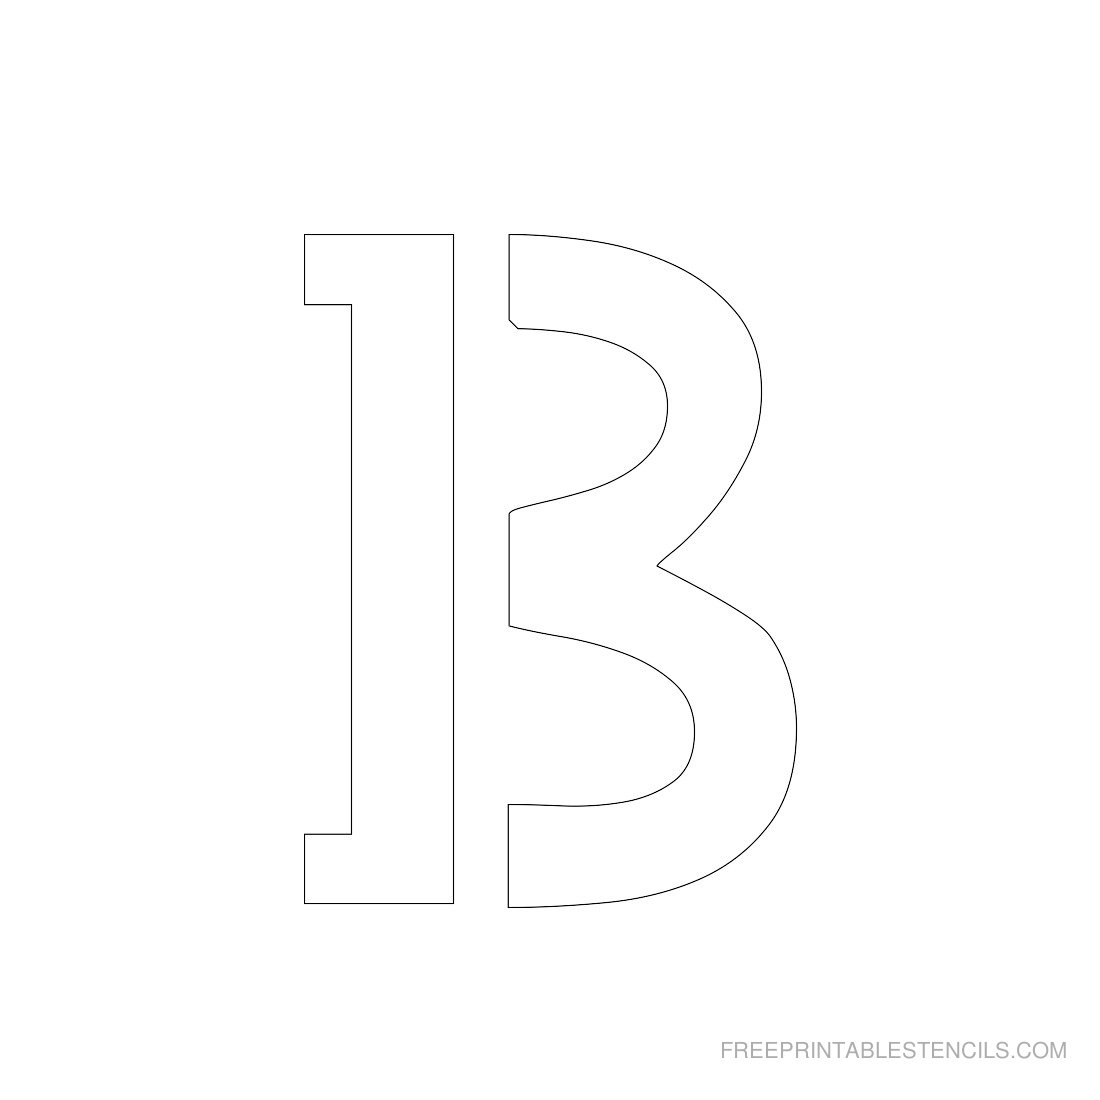 Printable 3 Inch Letter Stencils A-Z   Free Printable Stencils - Free Printable 3 Inch Number Stencils